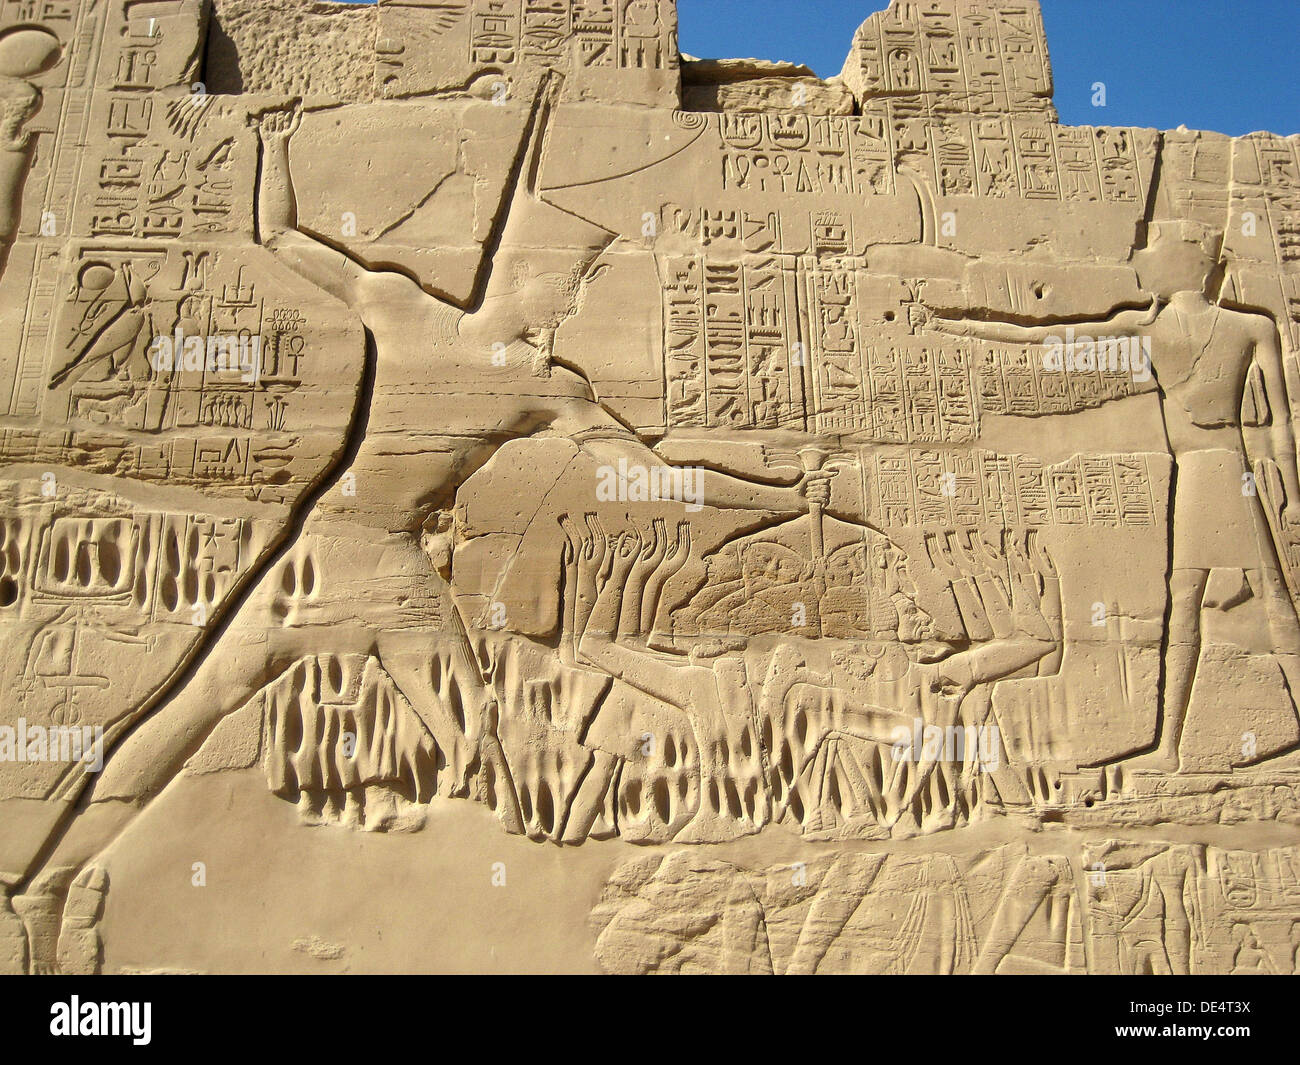 Tuthmosis III smiting his enemies, the Cannaanites, at the Battle fo Megiddo from the north wall of the Great Hypostyle Court. - Stock Image